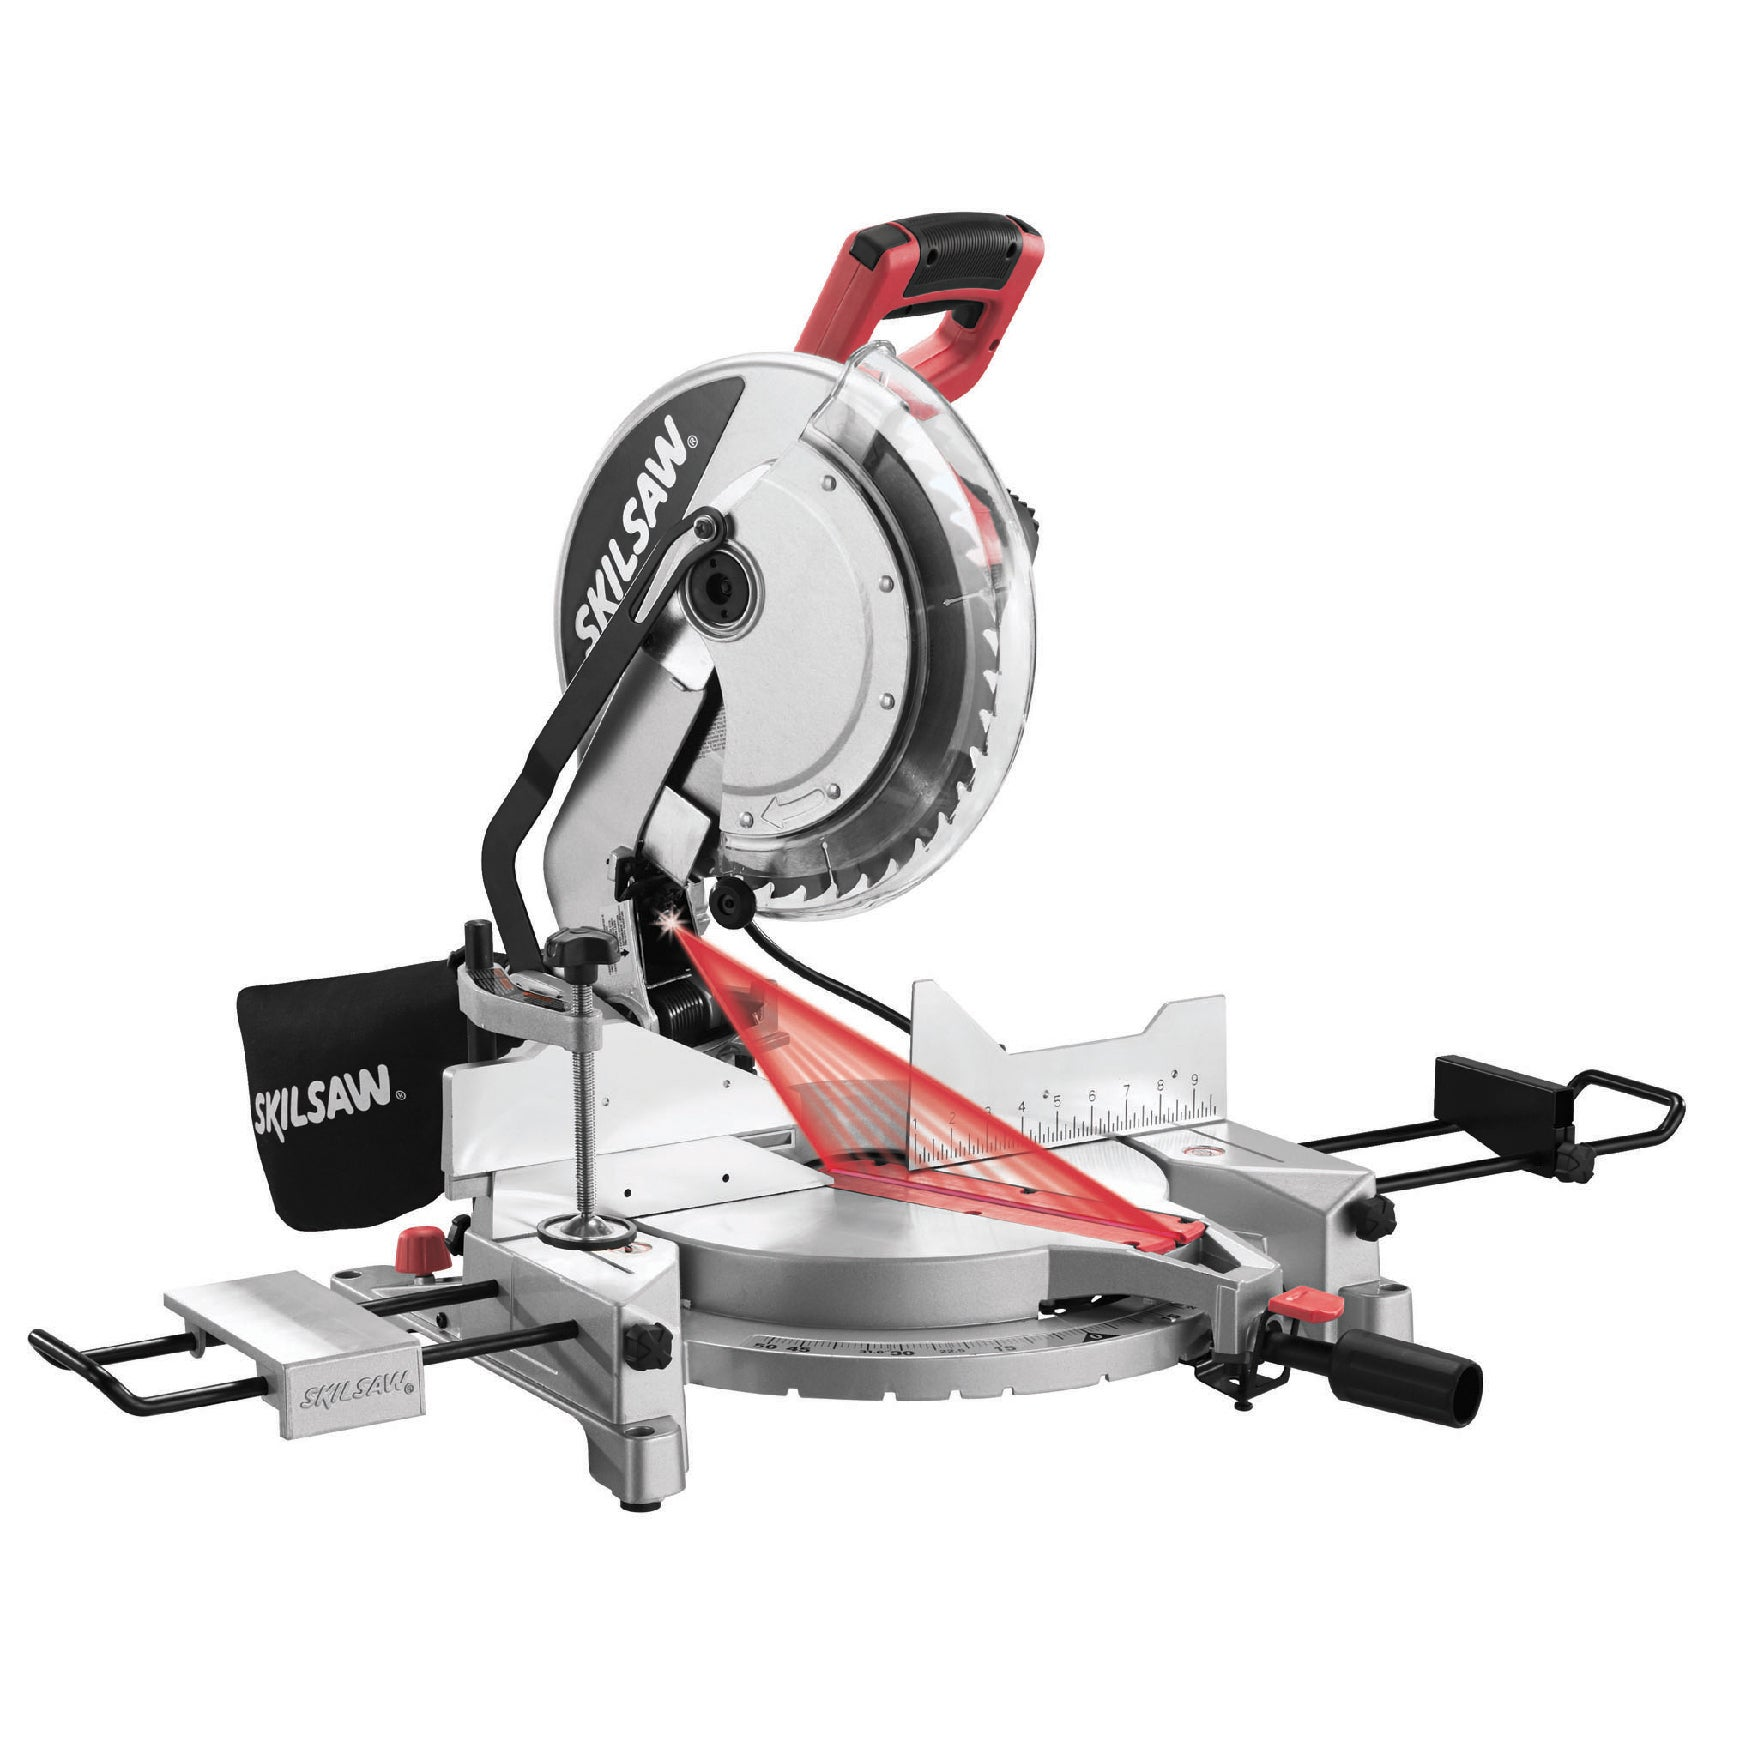 "Skil 3821-02 12"" Compound Miter Saw With Quick-Mount (Saw..."